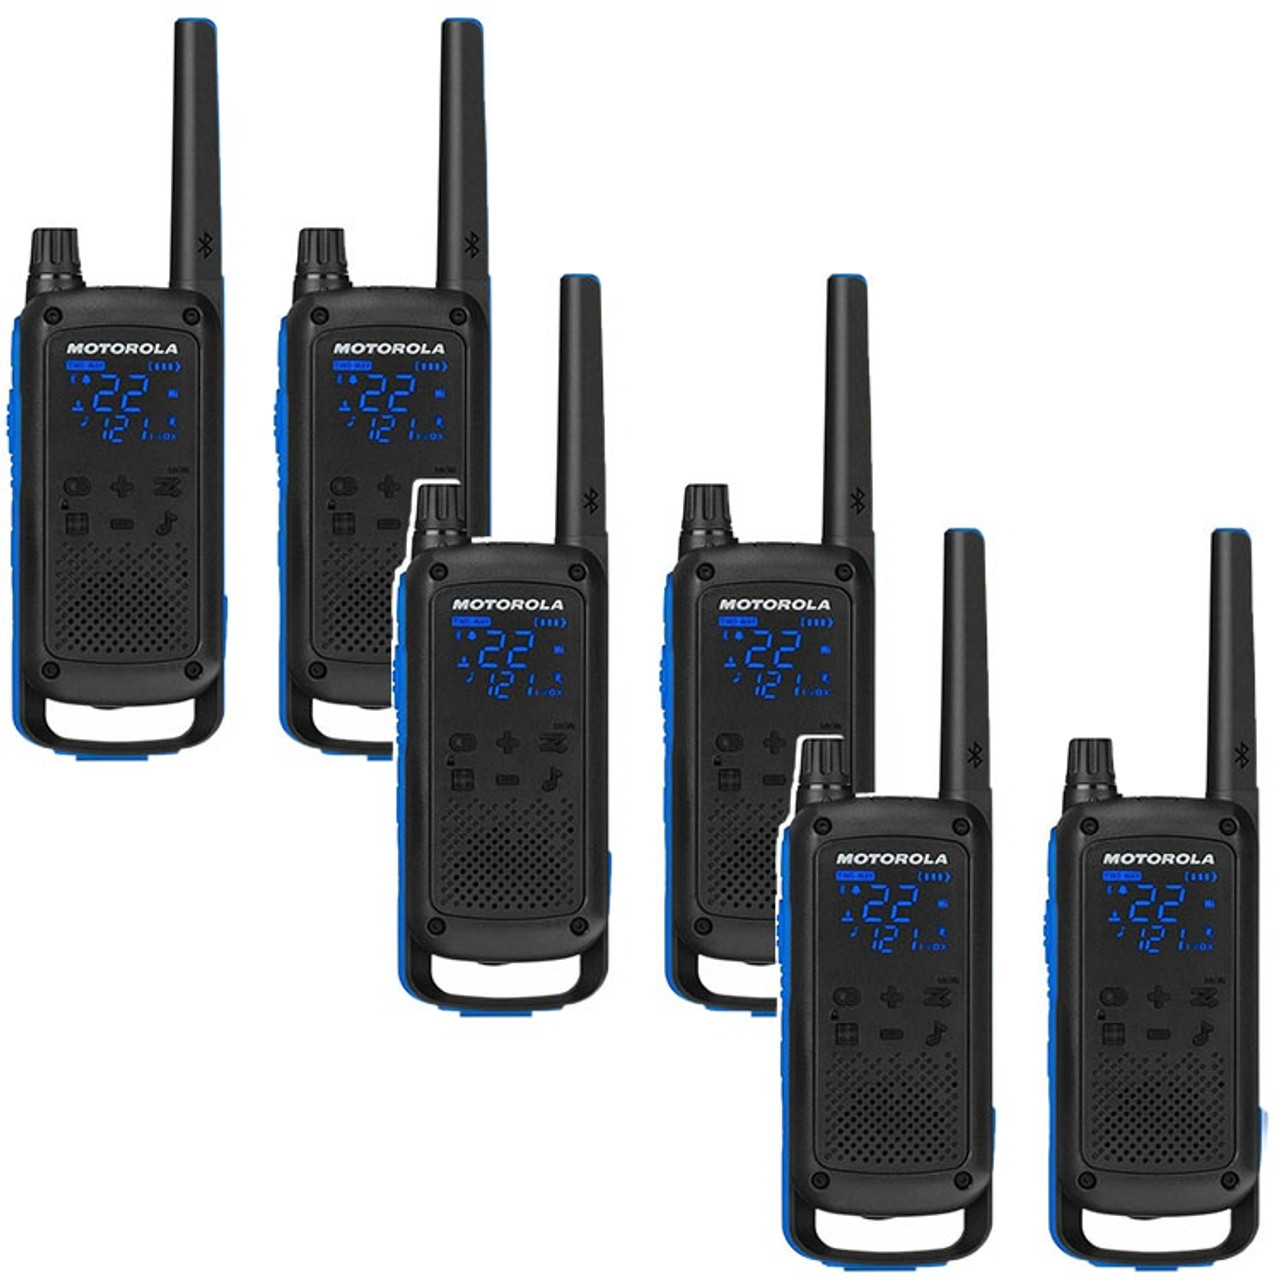 Motorola Talkabout T800 two way radio pack of 6